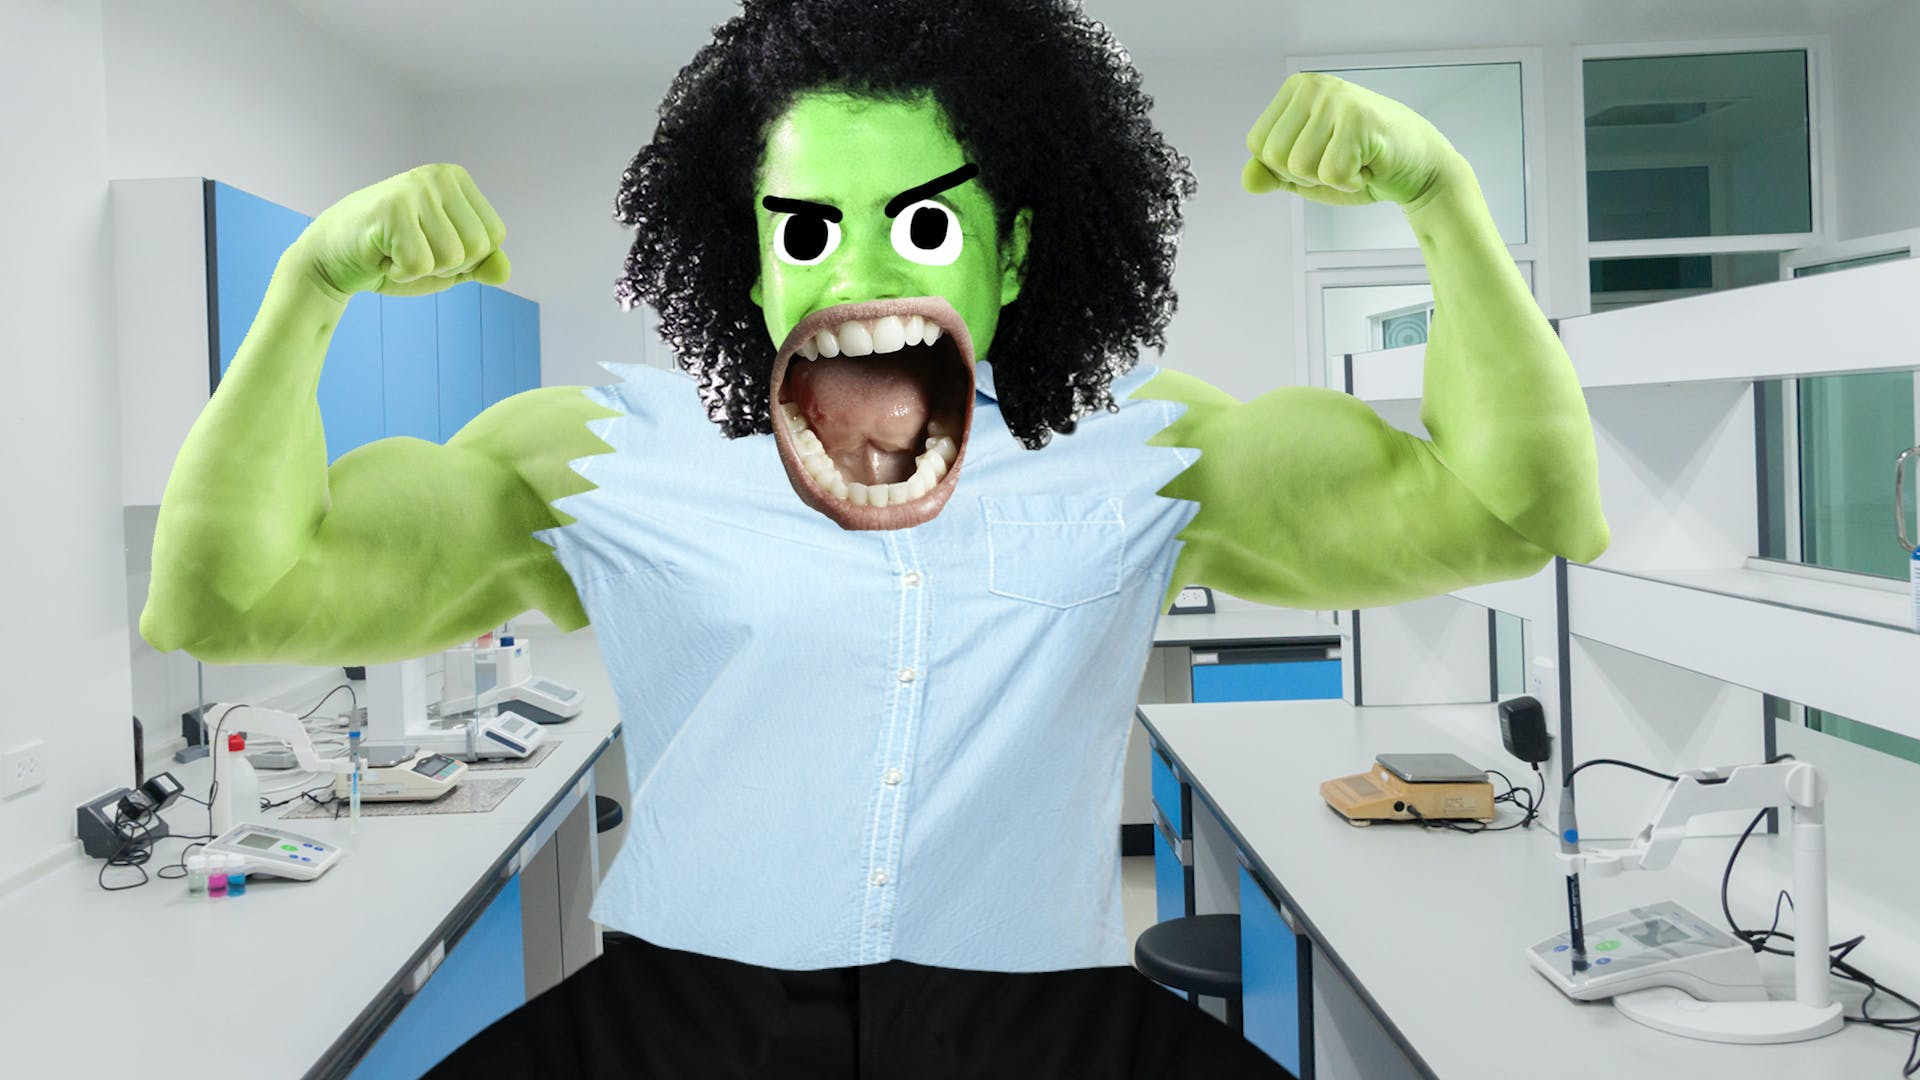 Science teacher is green and angry with muscles